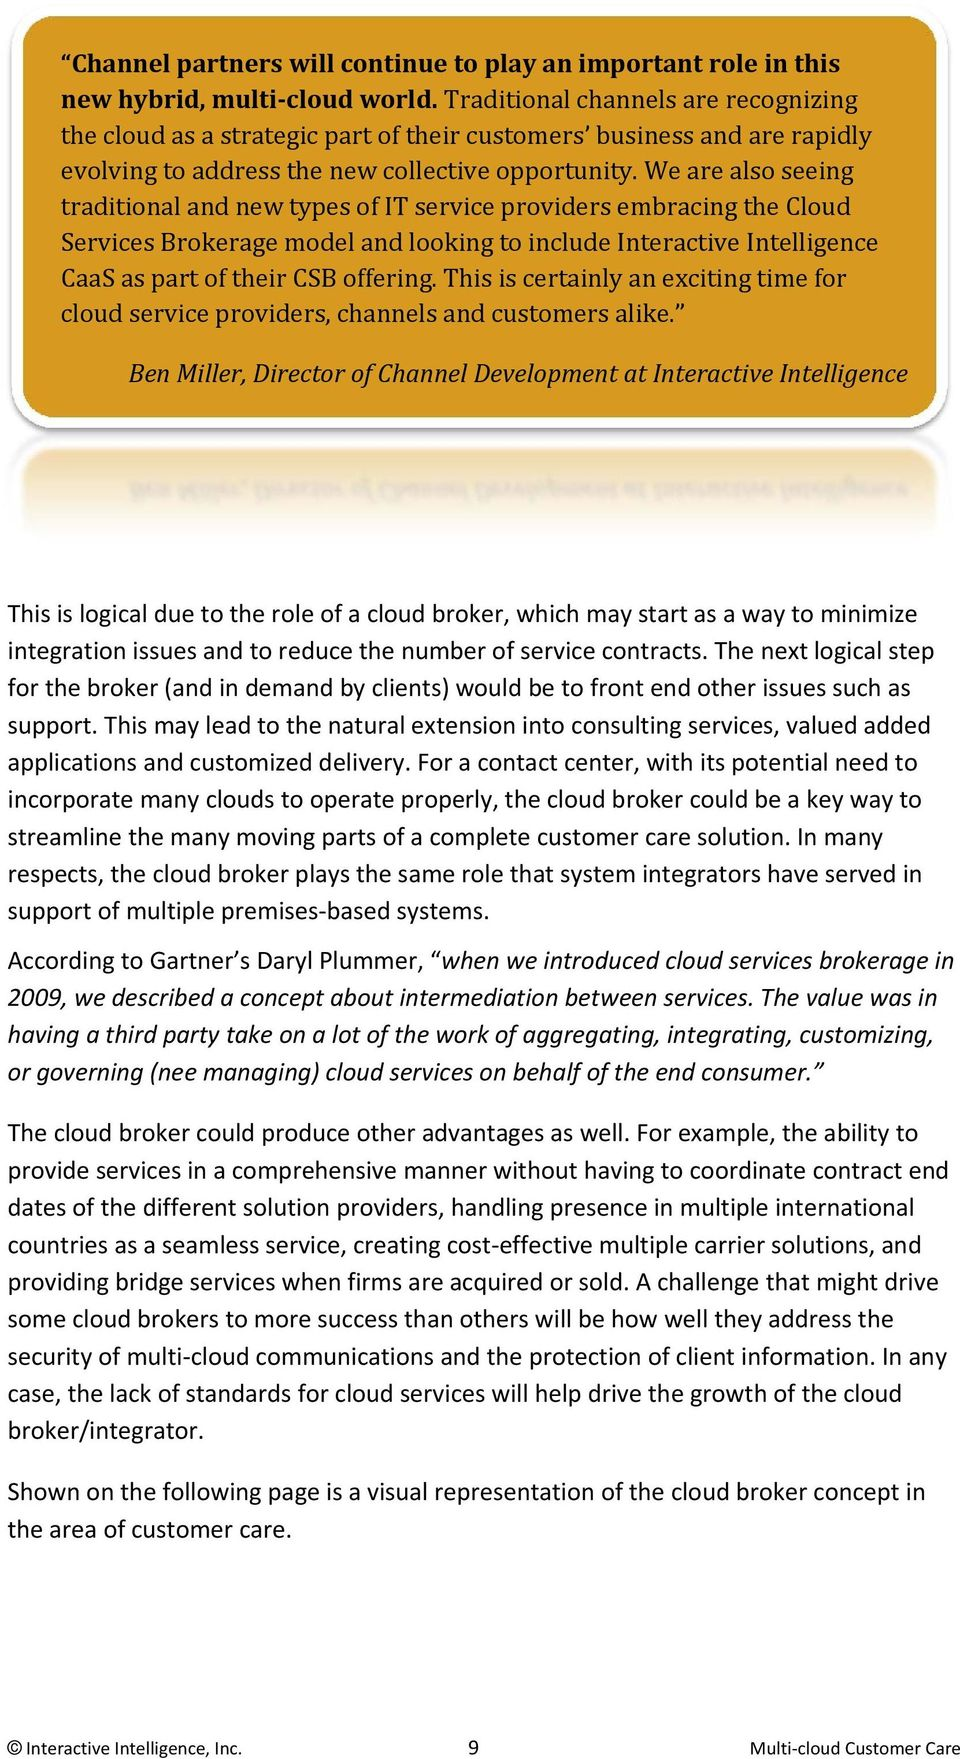 We are also seeing traditional and new types of IT service providers embracing the Cloud Services Brokerage model and looking to include Interactive Intelligence CaaS as part of their CSB offering.